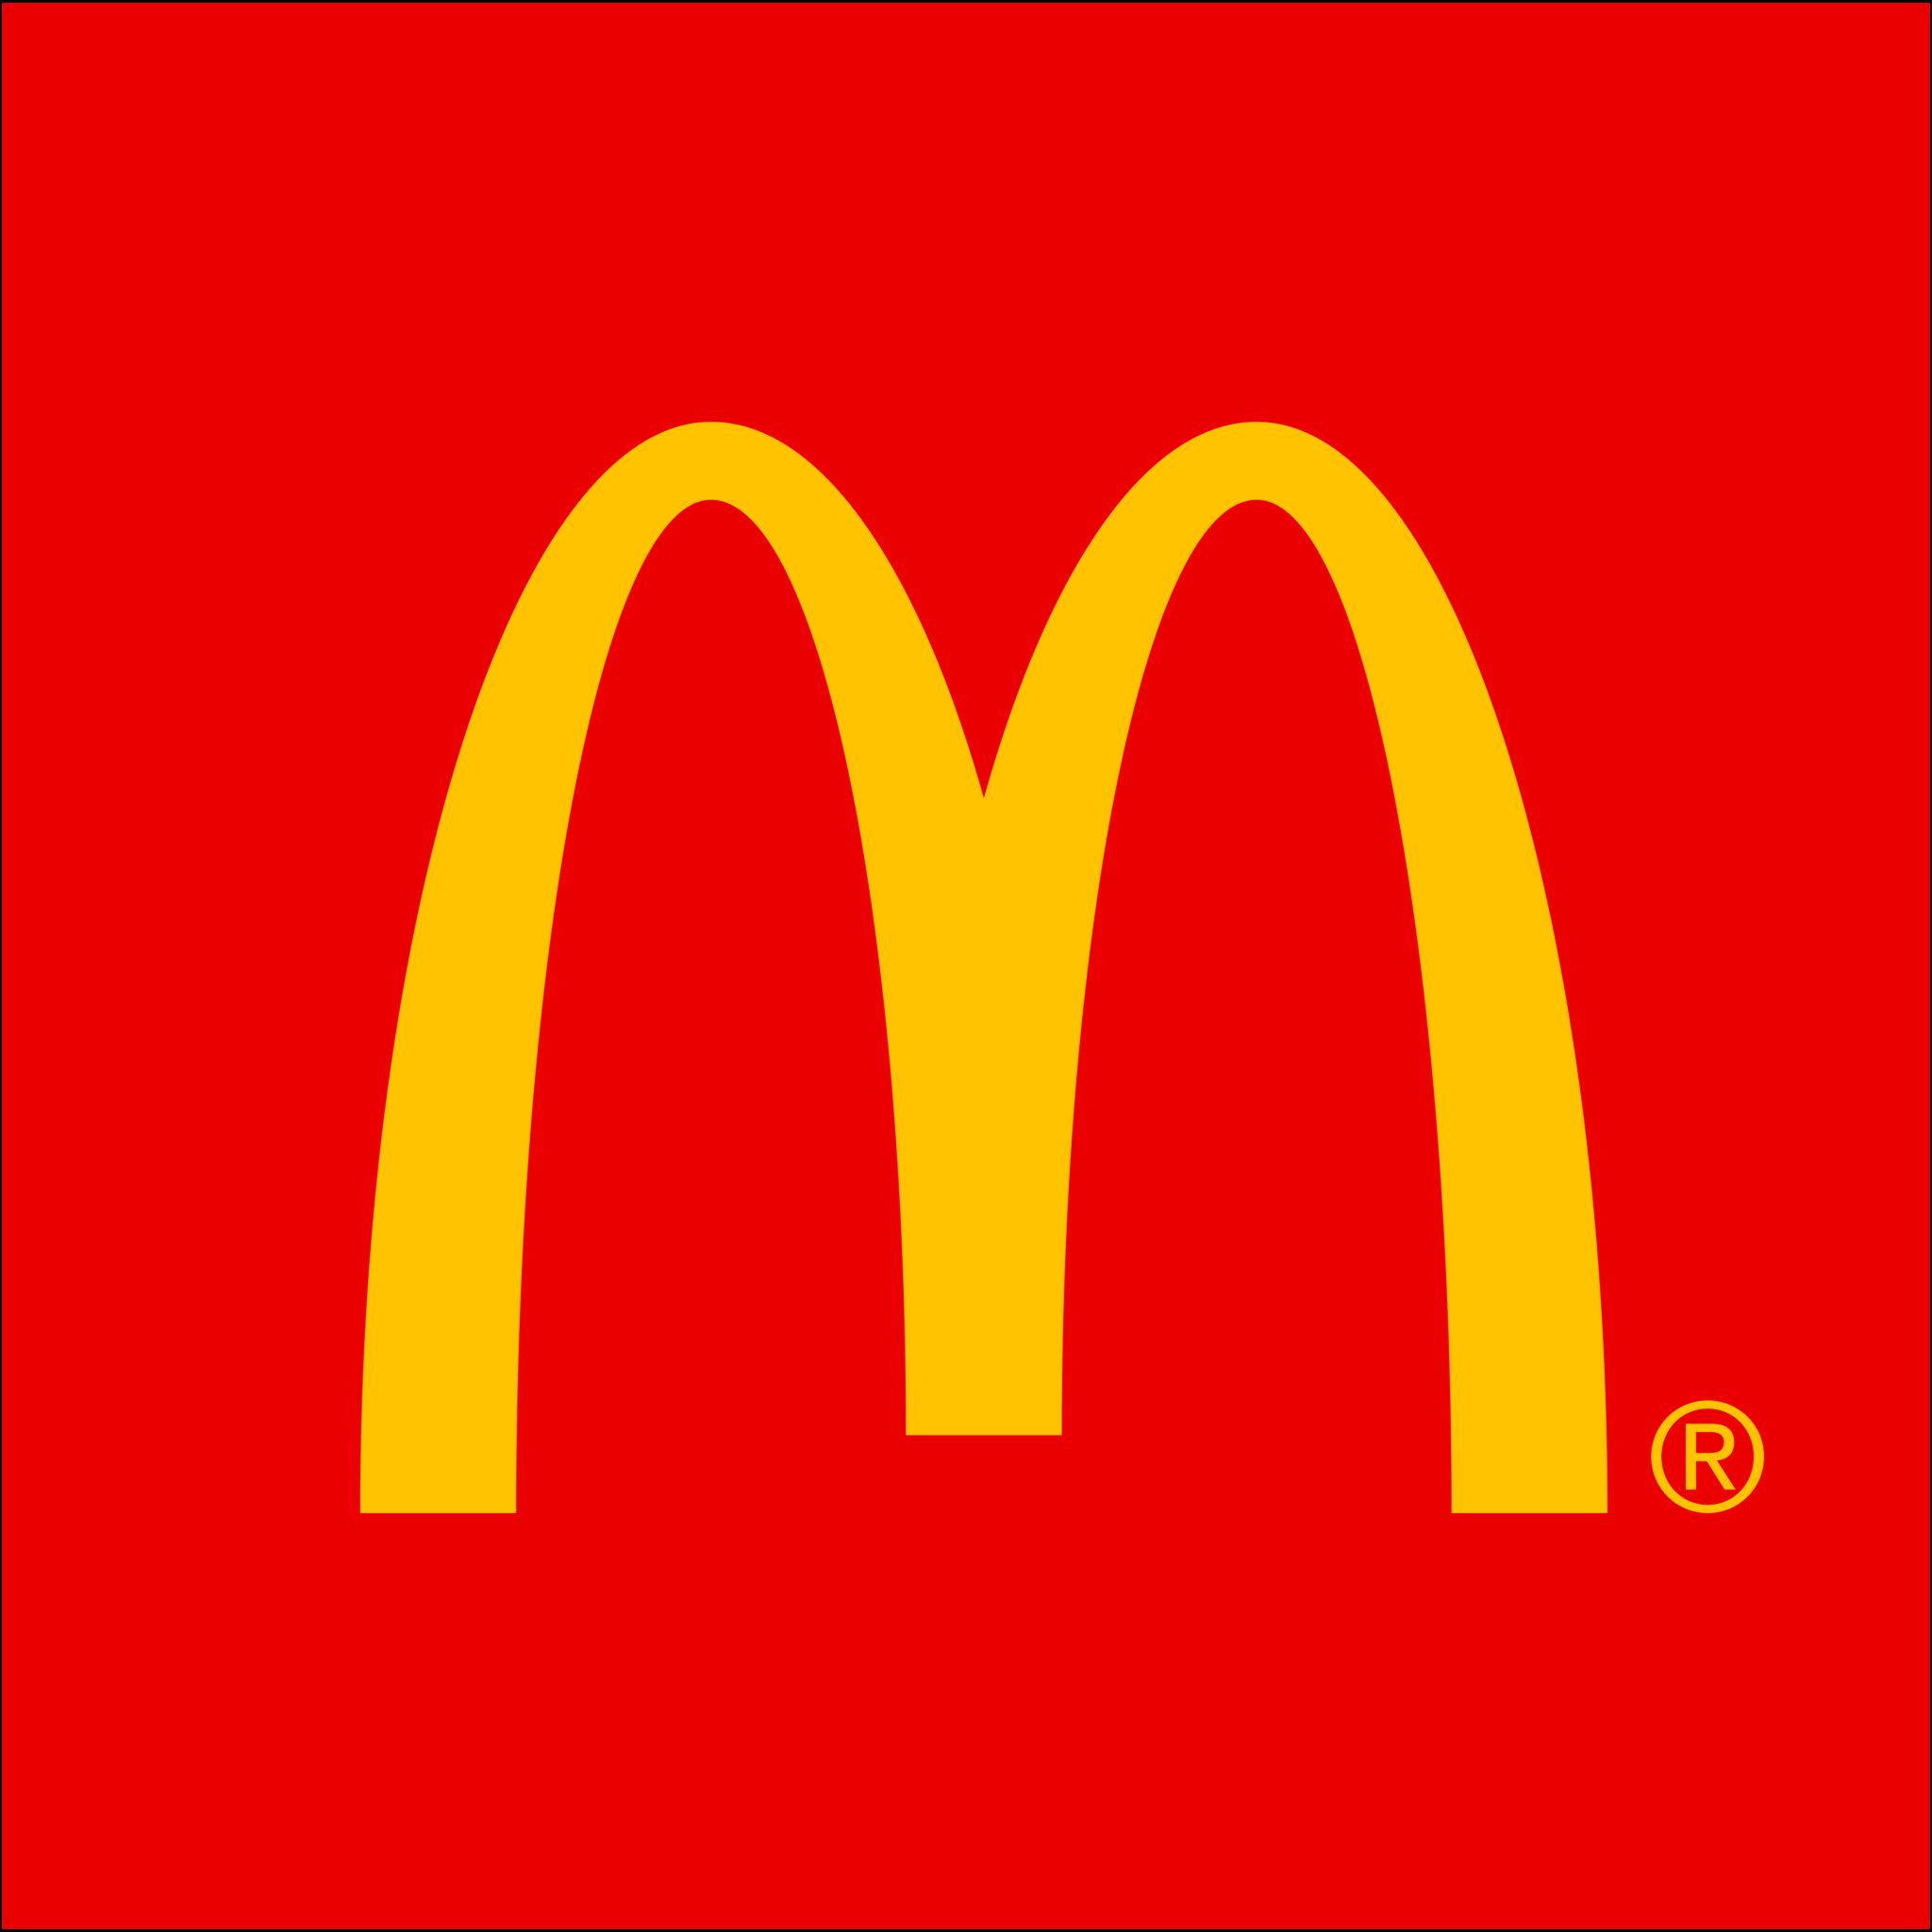 McDonald's - Fast Food Restaurants